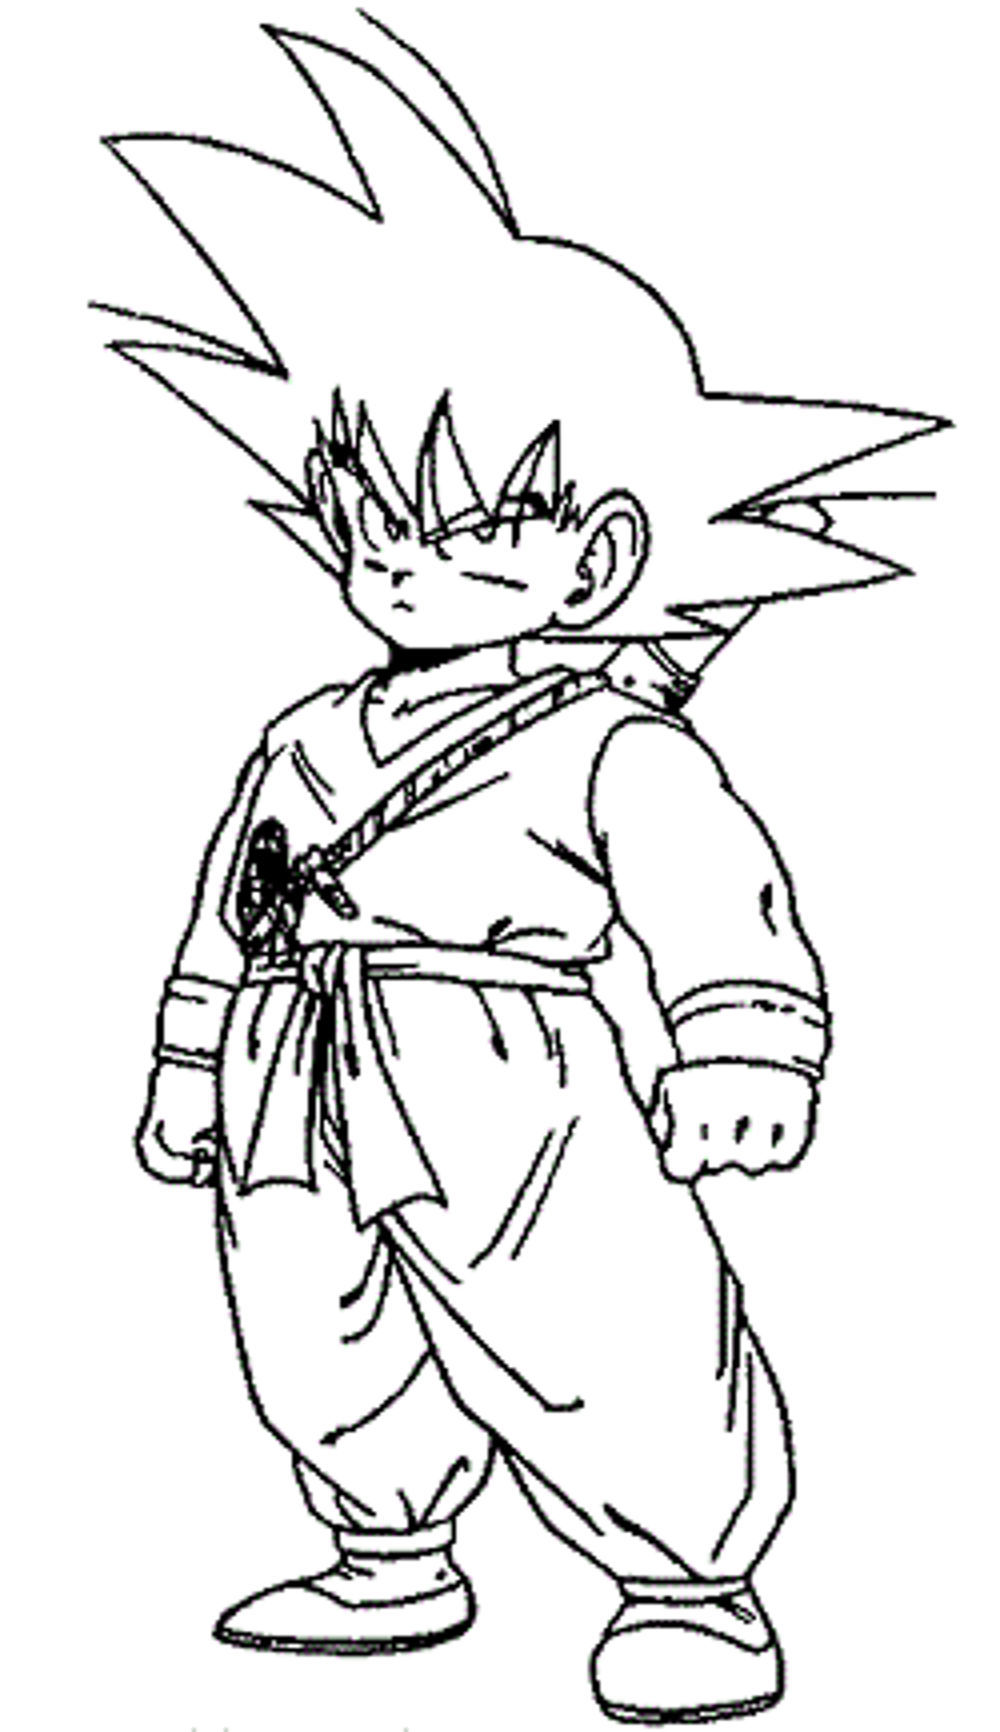 1000x1732 Dragon Ball Z Coloring Pages Little Goku